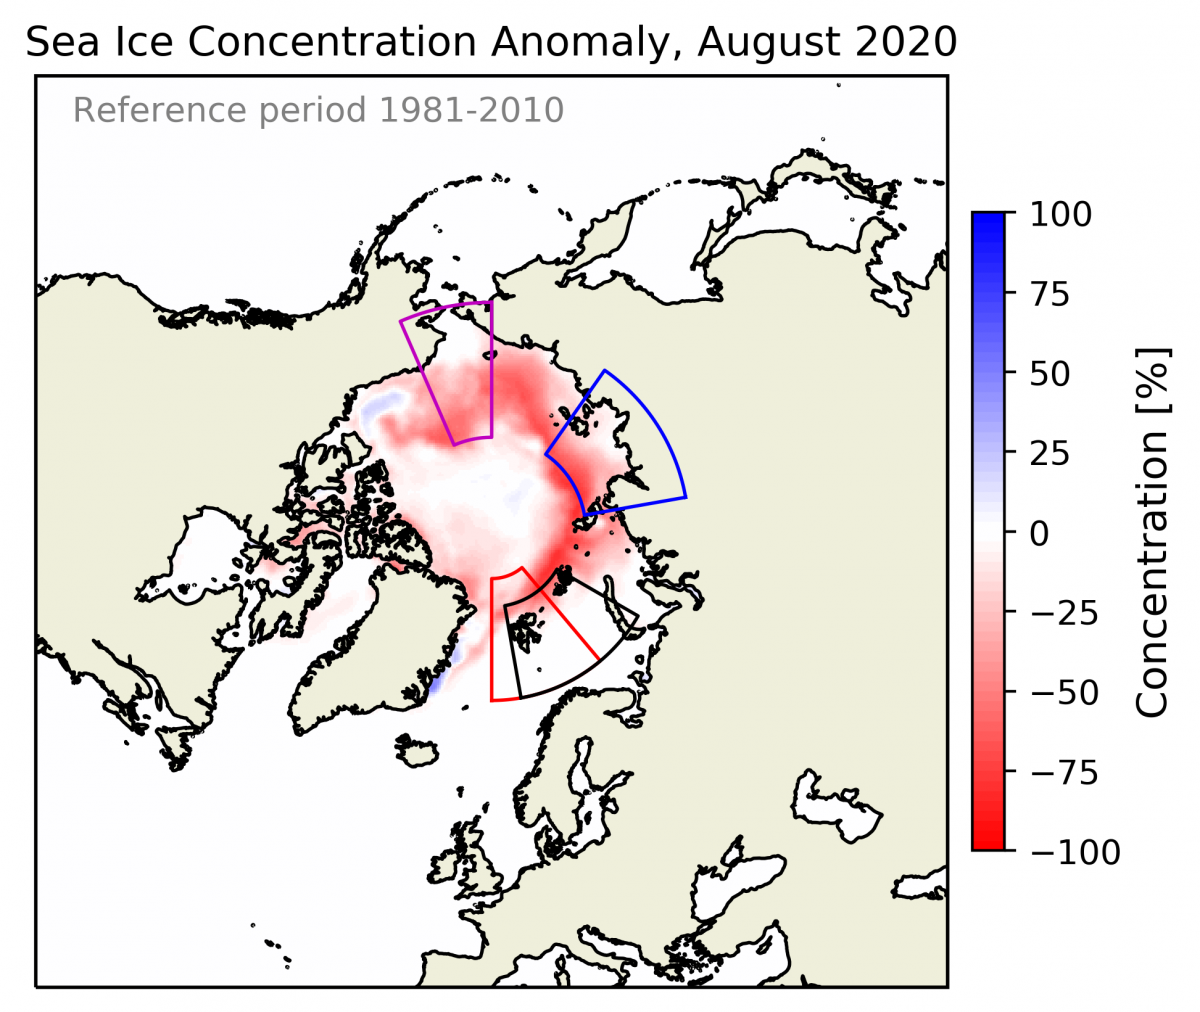 Arctic sea-ice concentration anomaly August 2020